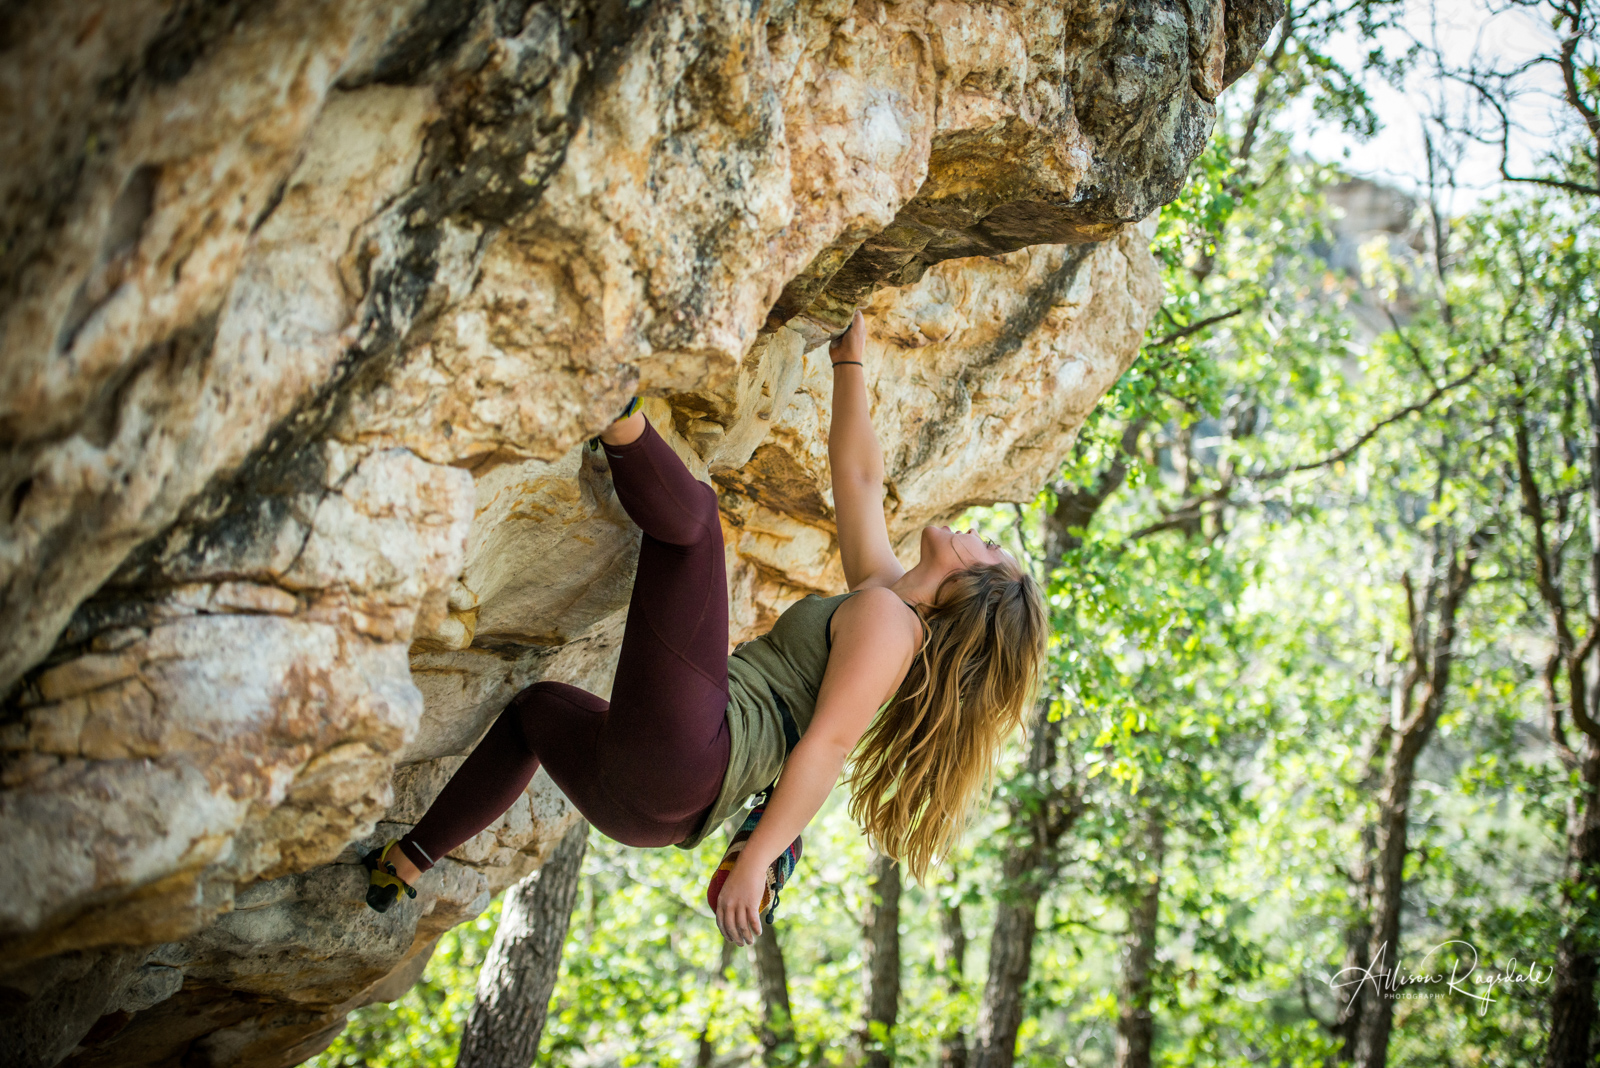 seniors climbing adventure portraits in Durango Colorado by Allison Ragsdale Photography